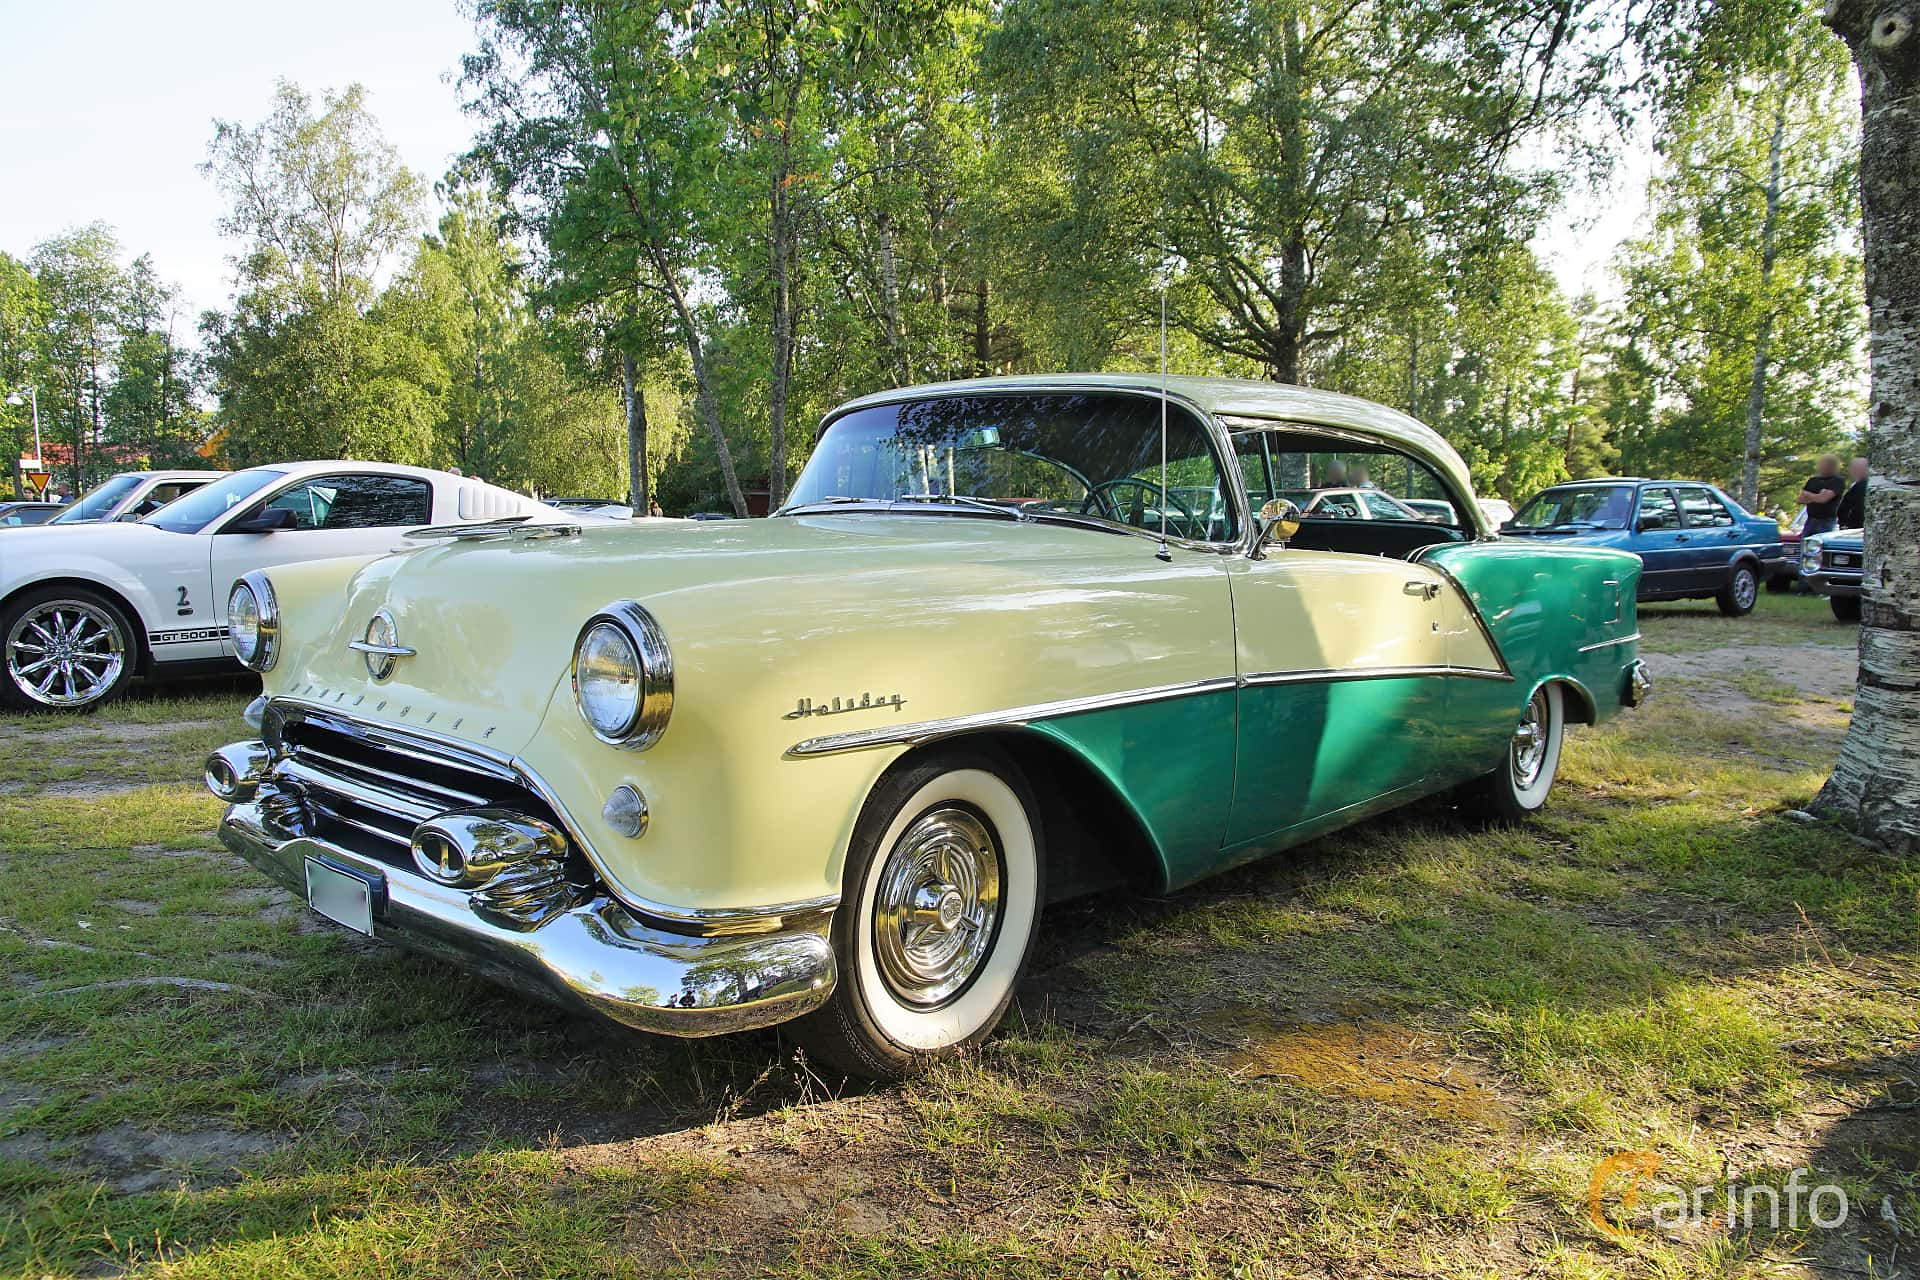 Front/Side  of Oldsmobile Ninety-Eight Holiday Coupé 5.3 V8 Hydra-Matic, 188ps, 1954 at Onsdagsträffar på Gammlia Umeå 2019 vecka 28